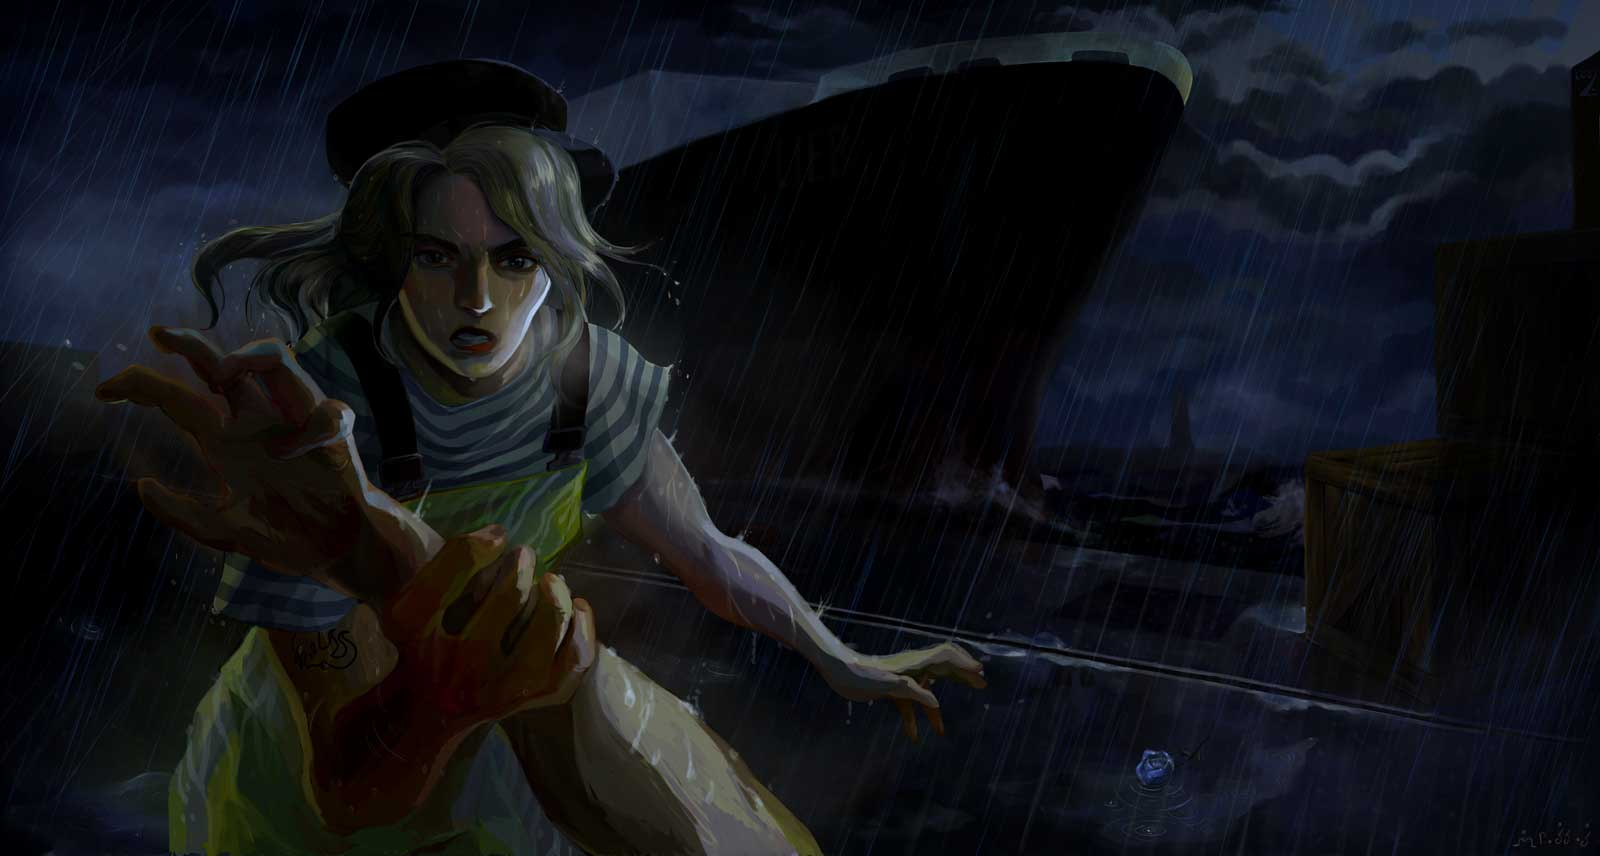 An angry sailor is crushing the arm of an unknown person on a rainy night at the docks.